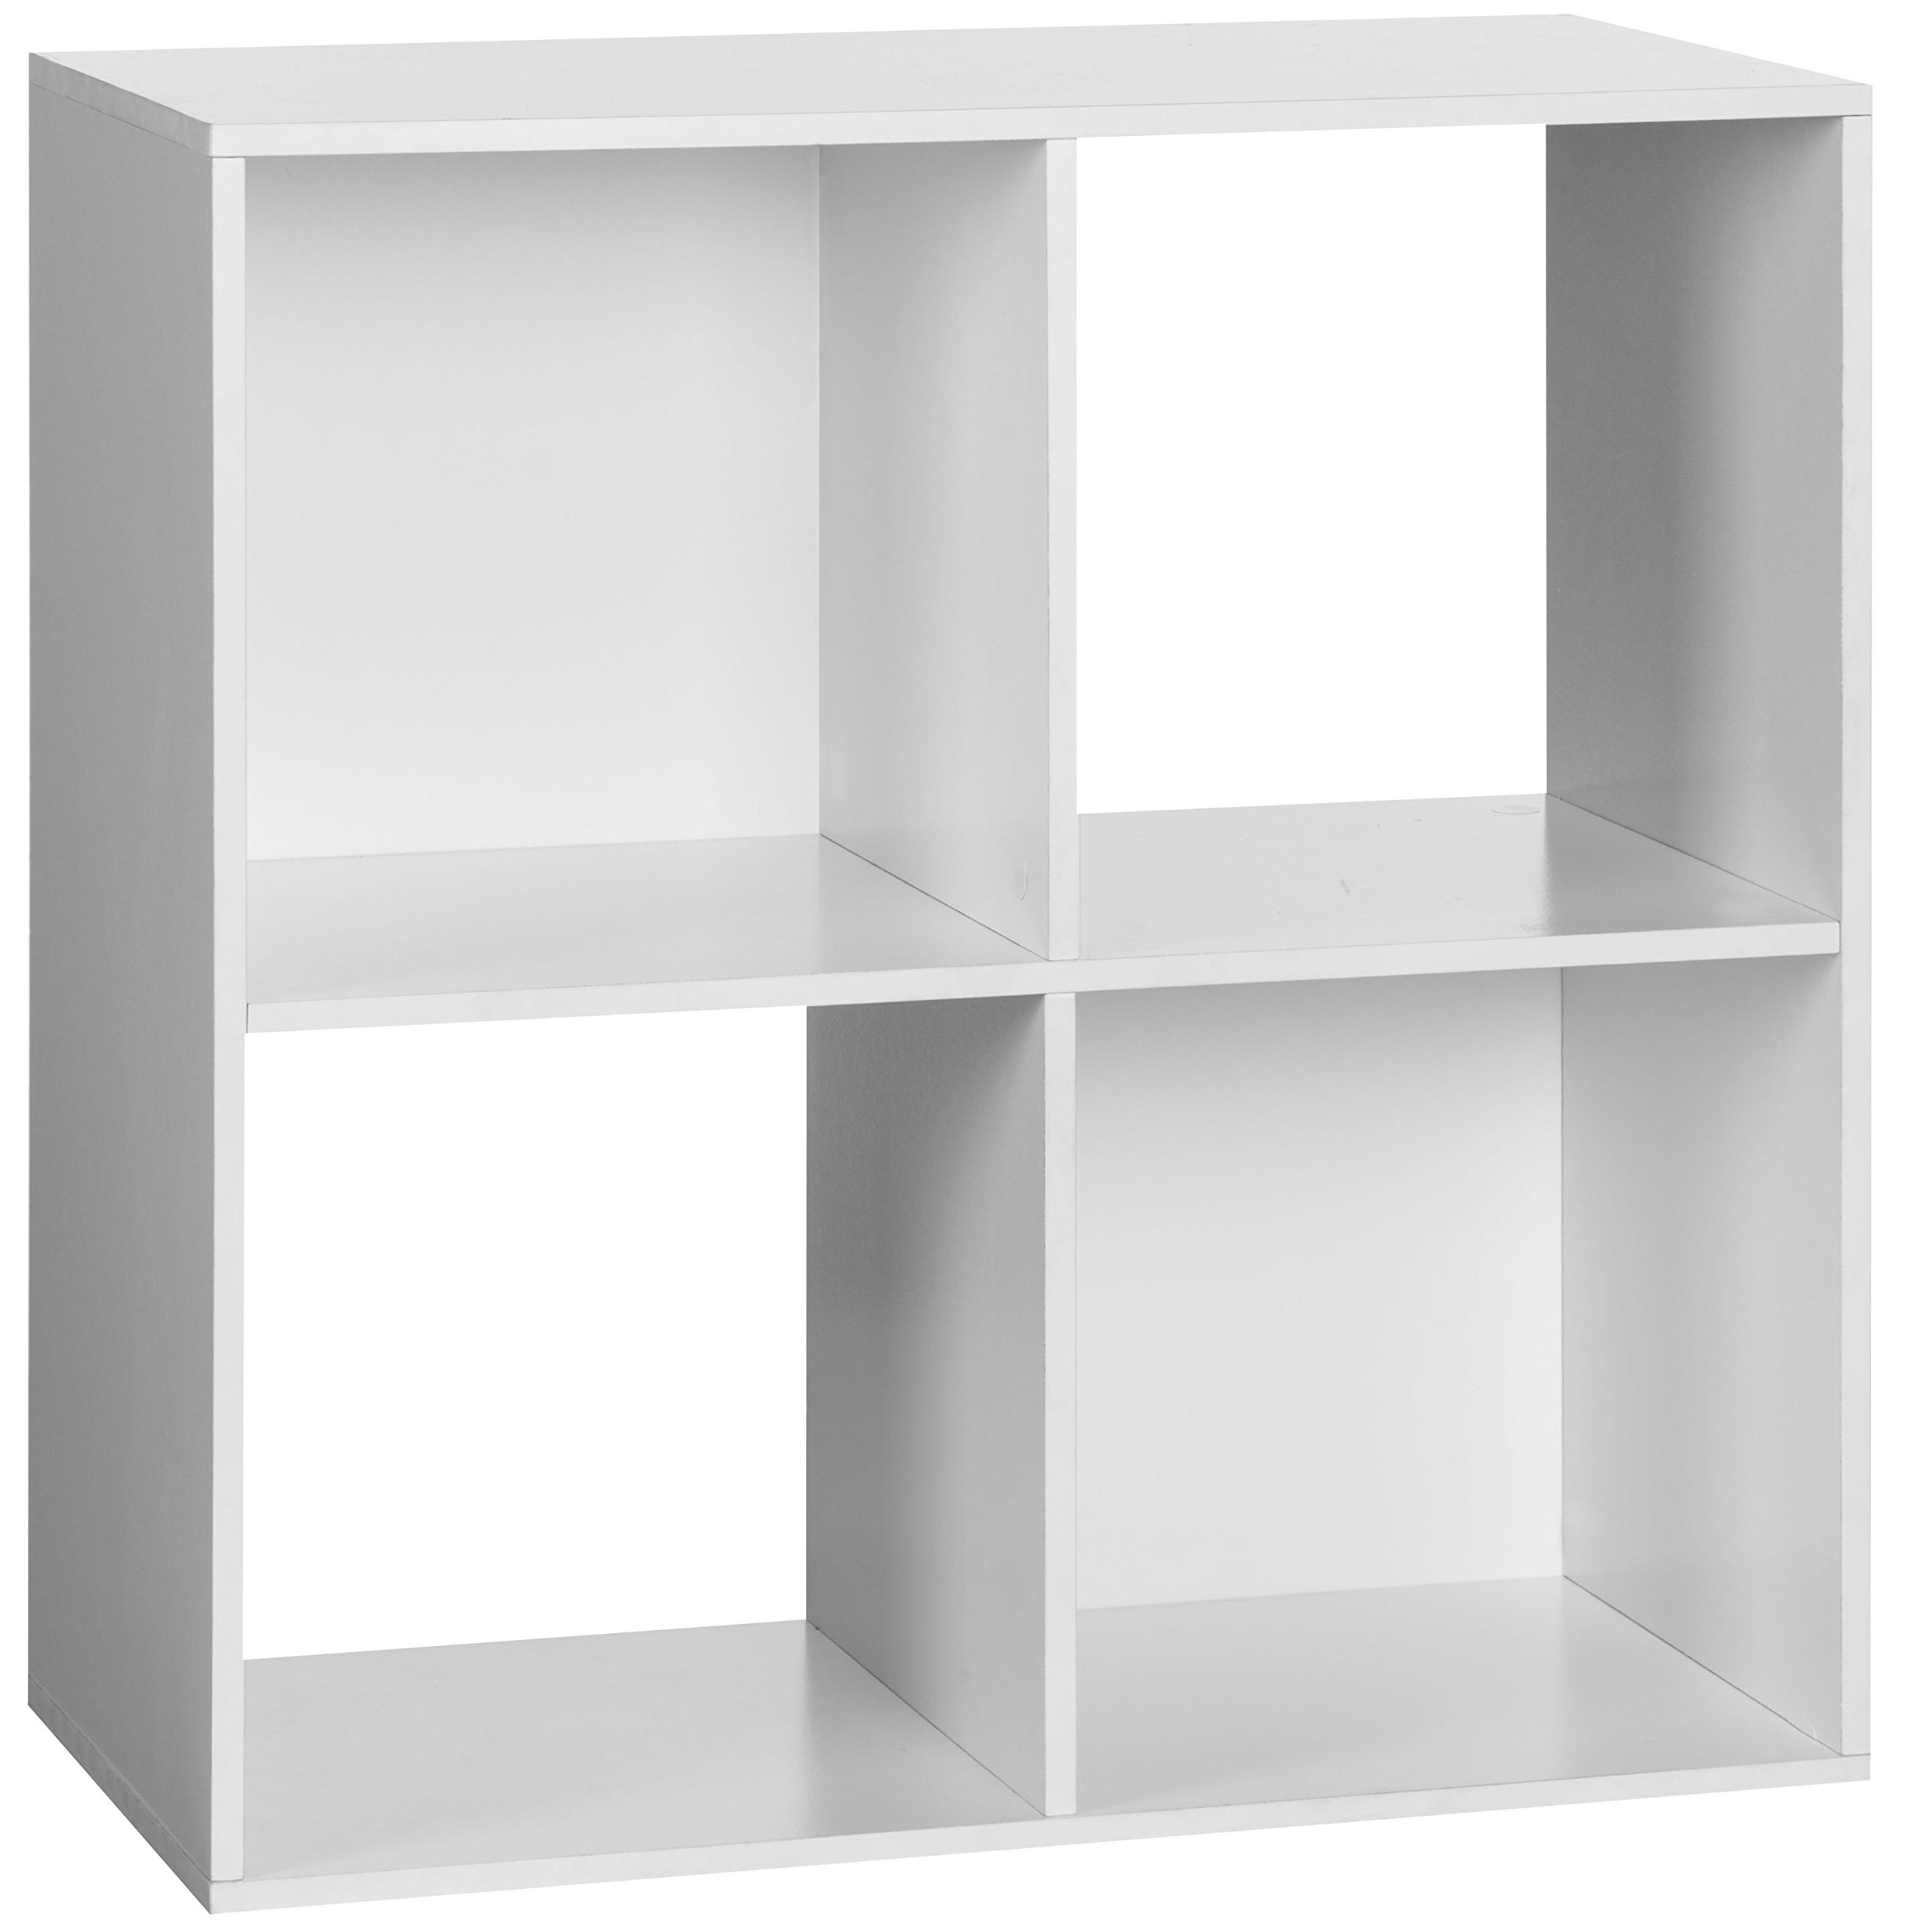 OneSpace 50-41201 4-Cube Organizer, White by OneSpace